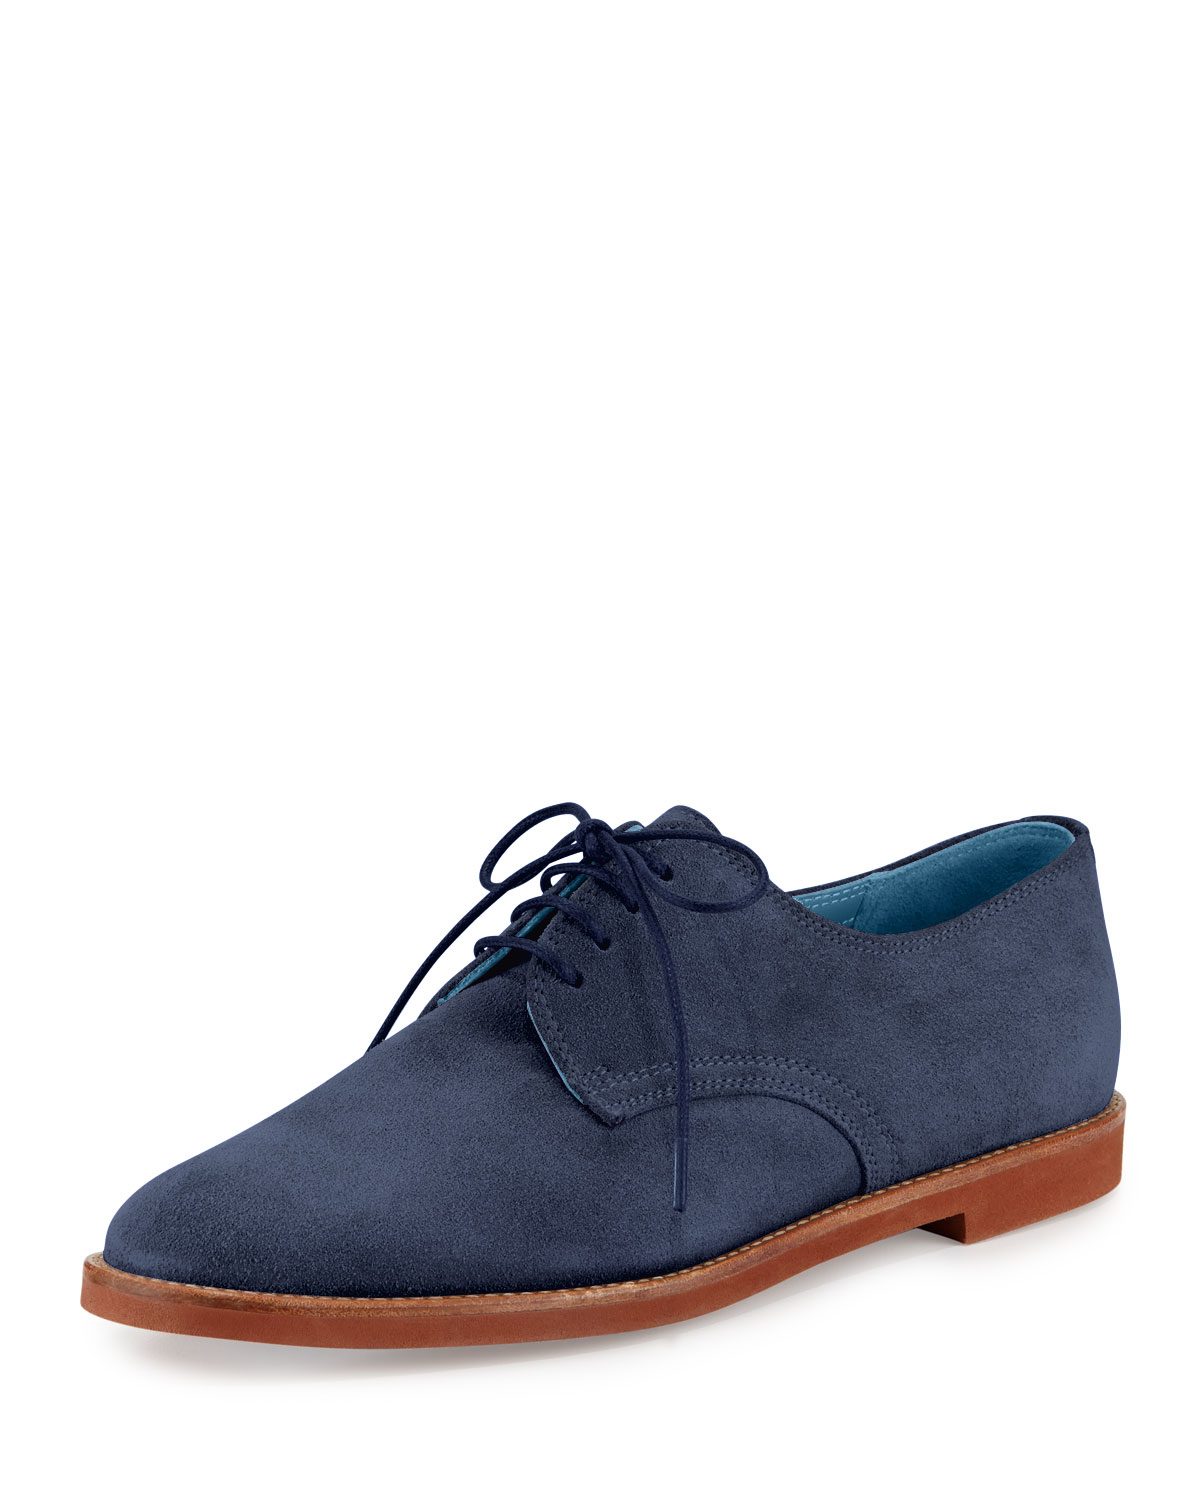 Manolo Blahnik Bukka Joe Suede Oxford Shoes In Blue | Lyst